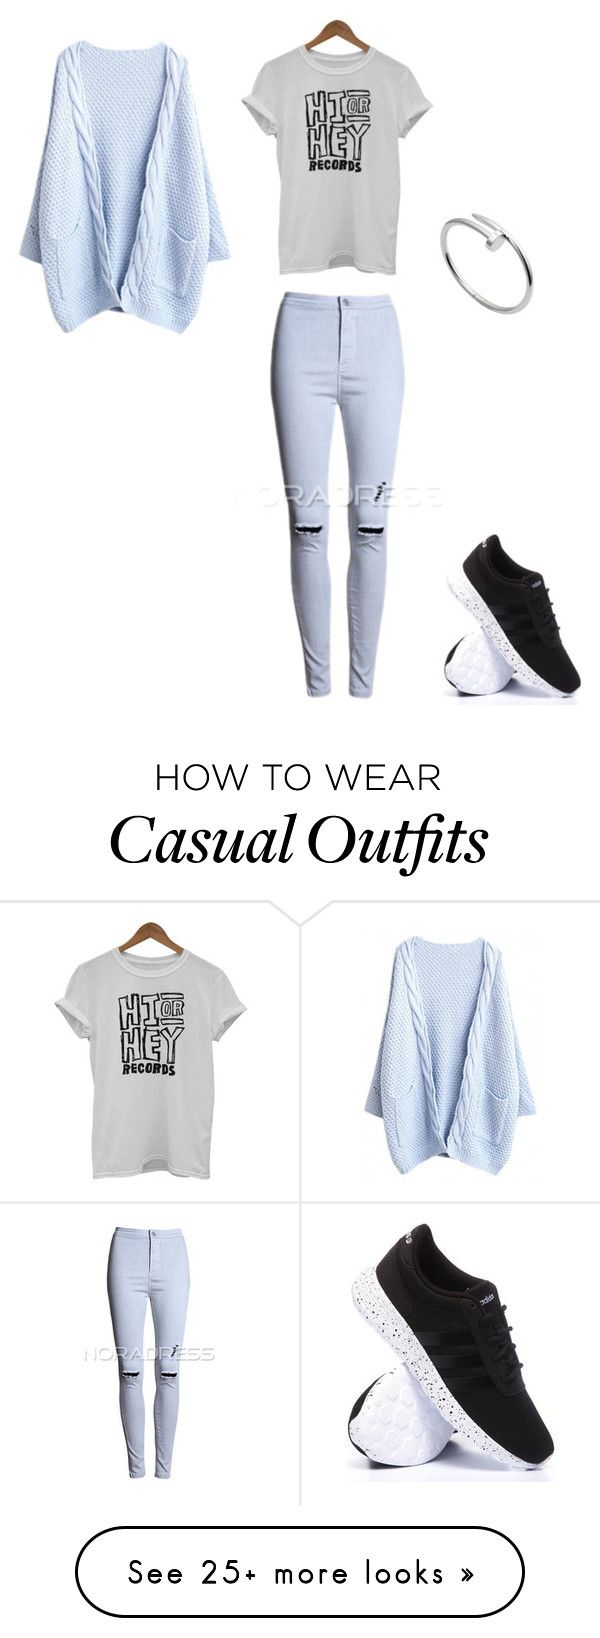 """""""#hiorheyrecords"""" by littlewonder2504 on Polyvore featuring adidas and Cartier"""